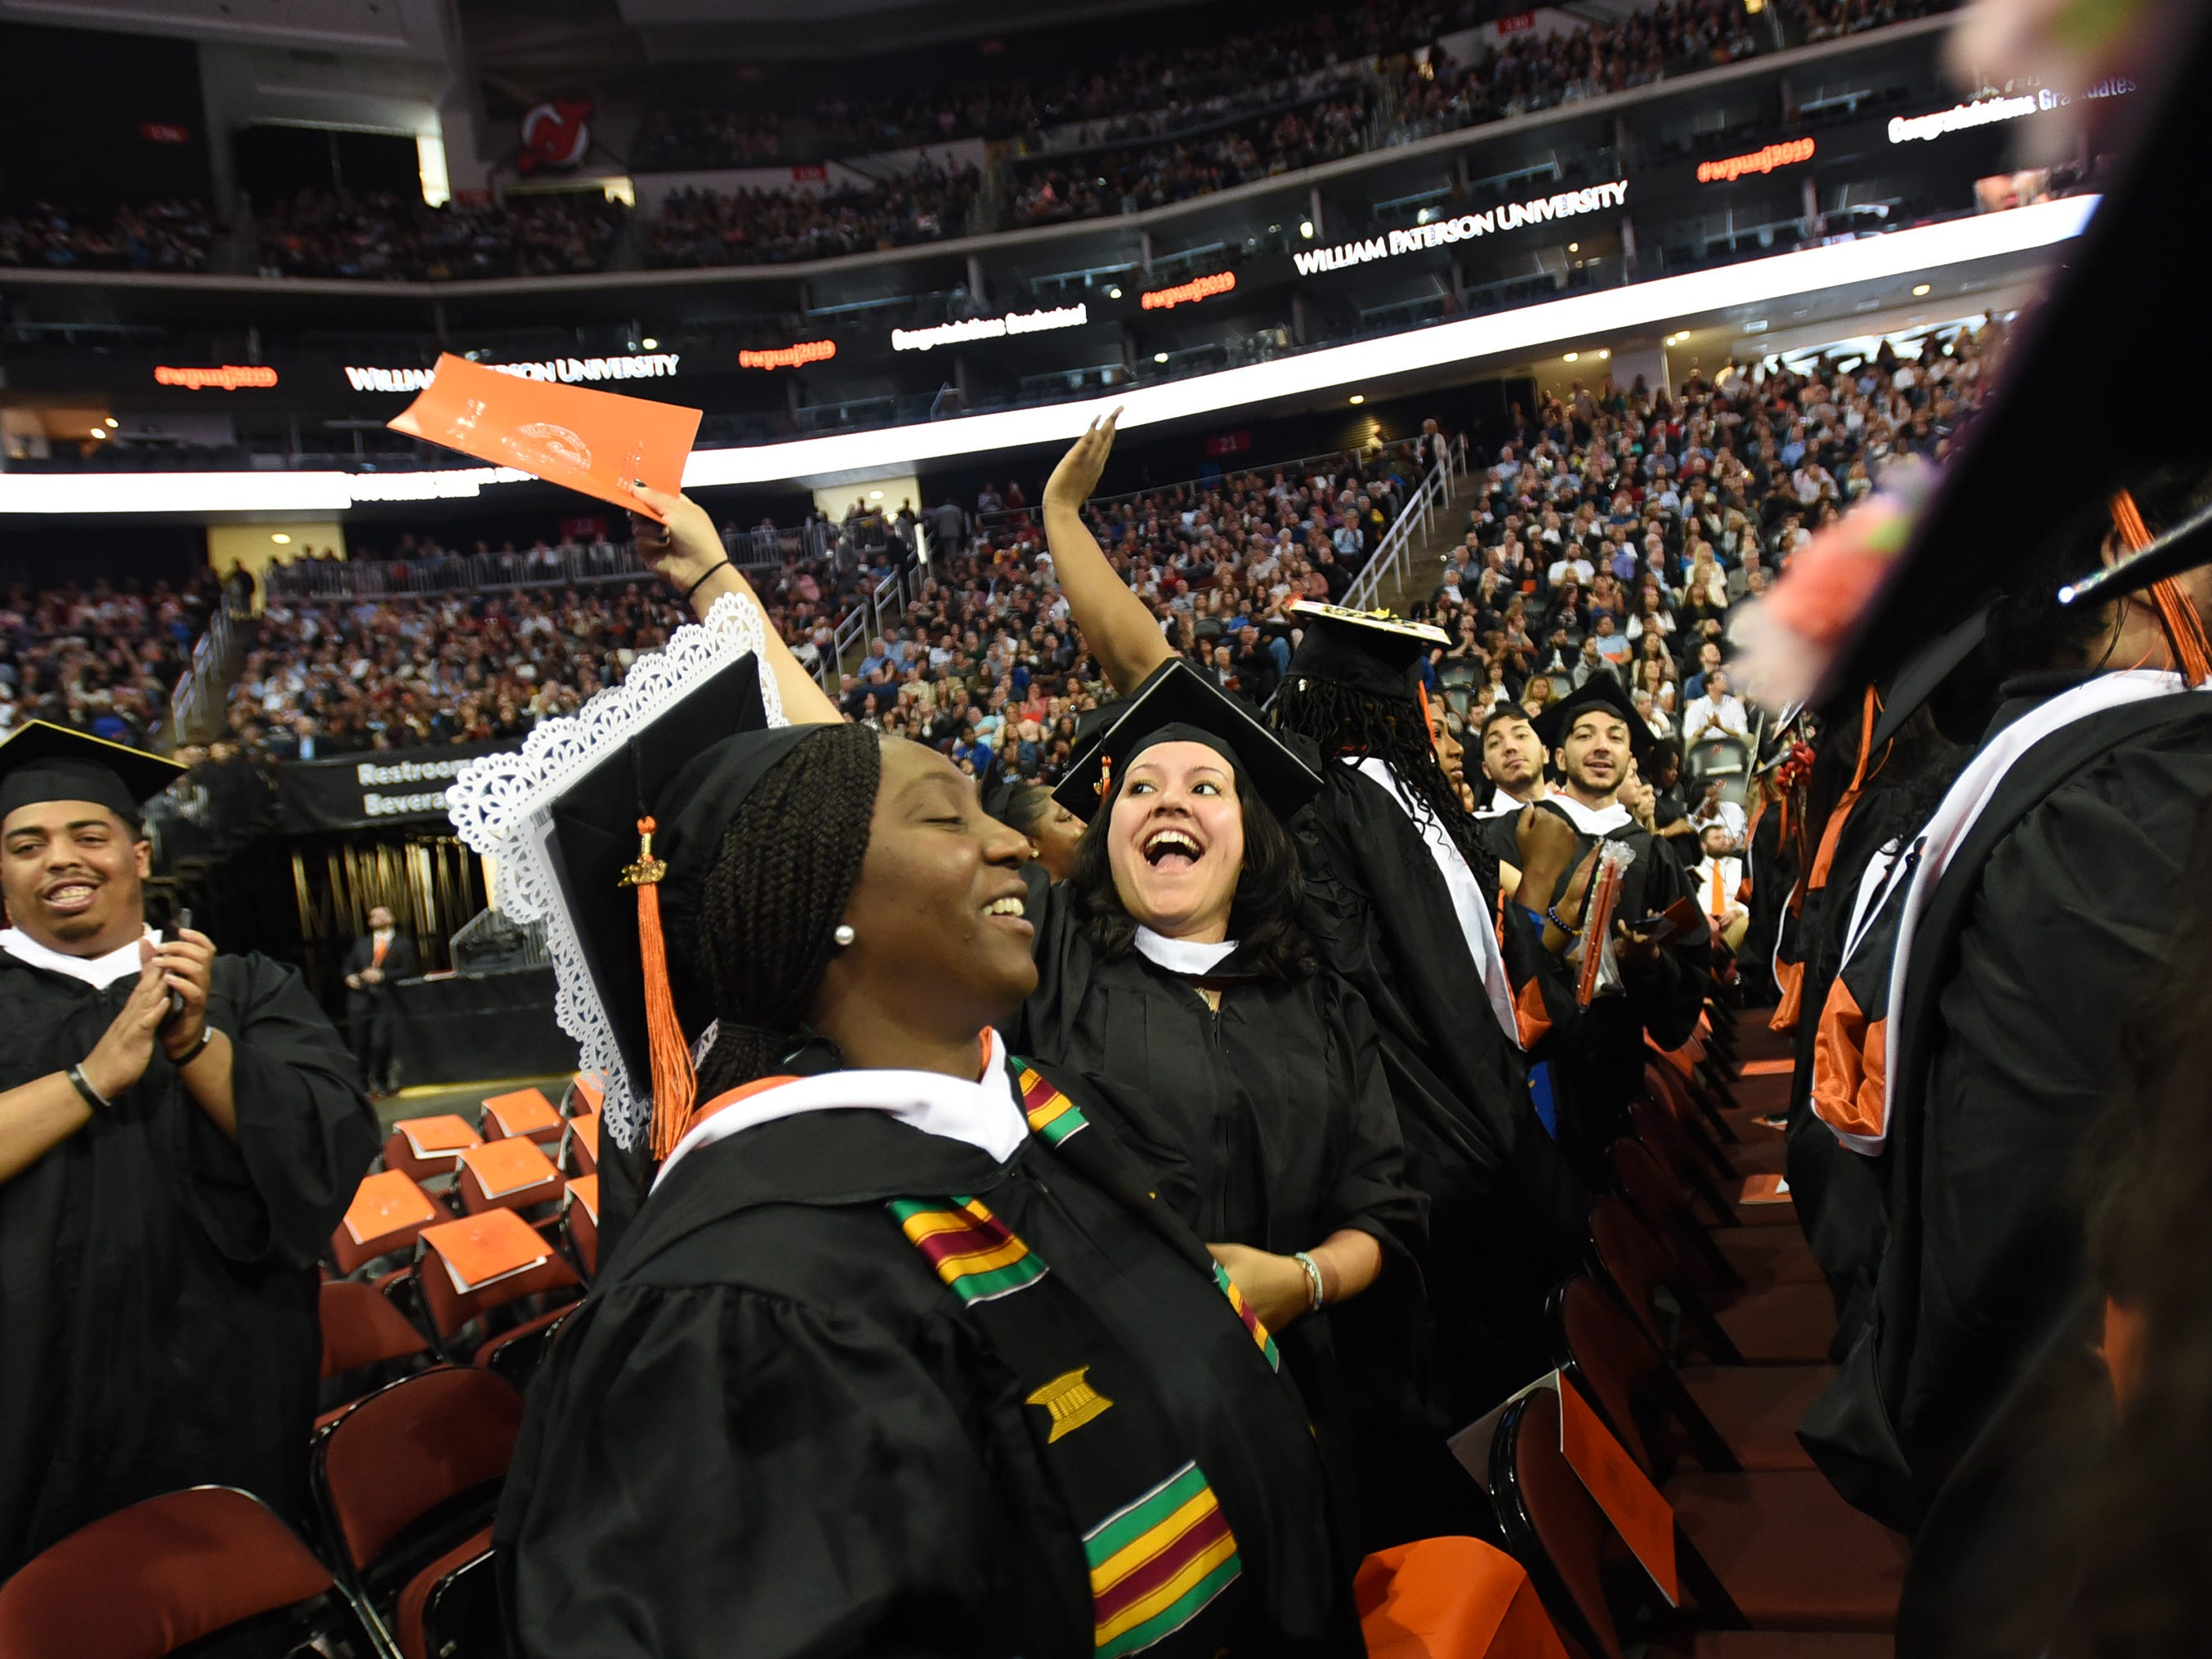 Yelitza Marie Garcia of Hawthorne, who is a Psychology Major, waves during the William Paterson University 2019 Commencement at the Prudential Center in Newark on 05/15/19.